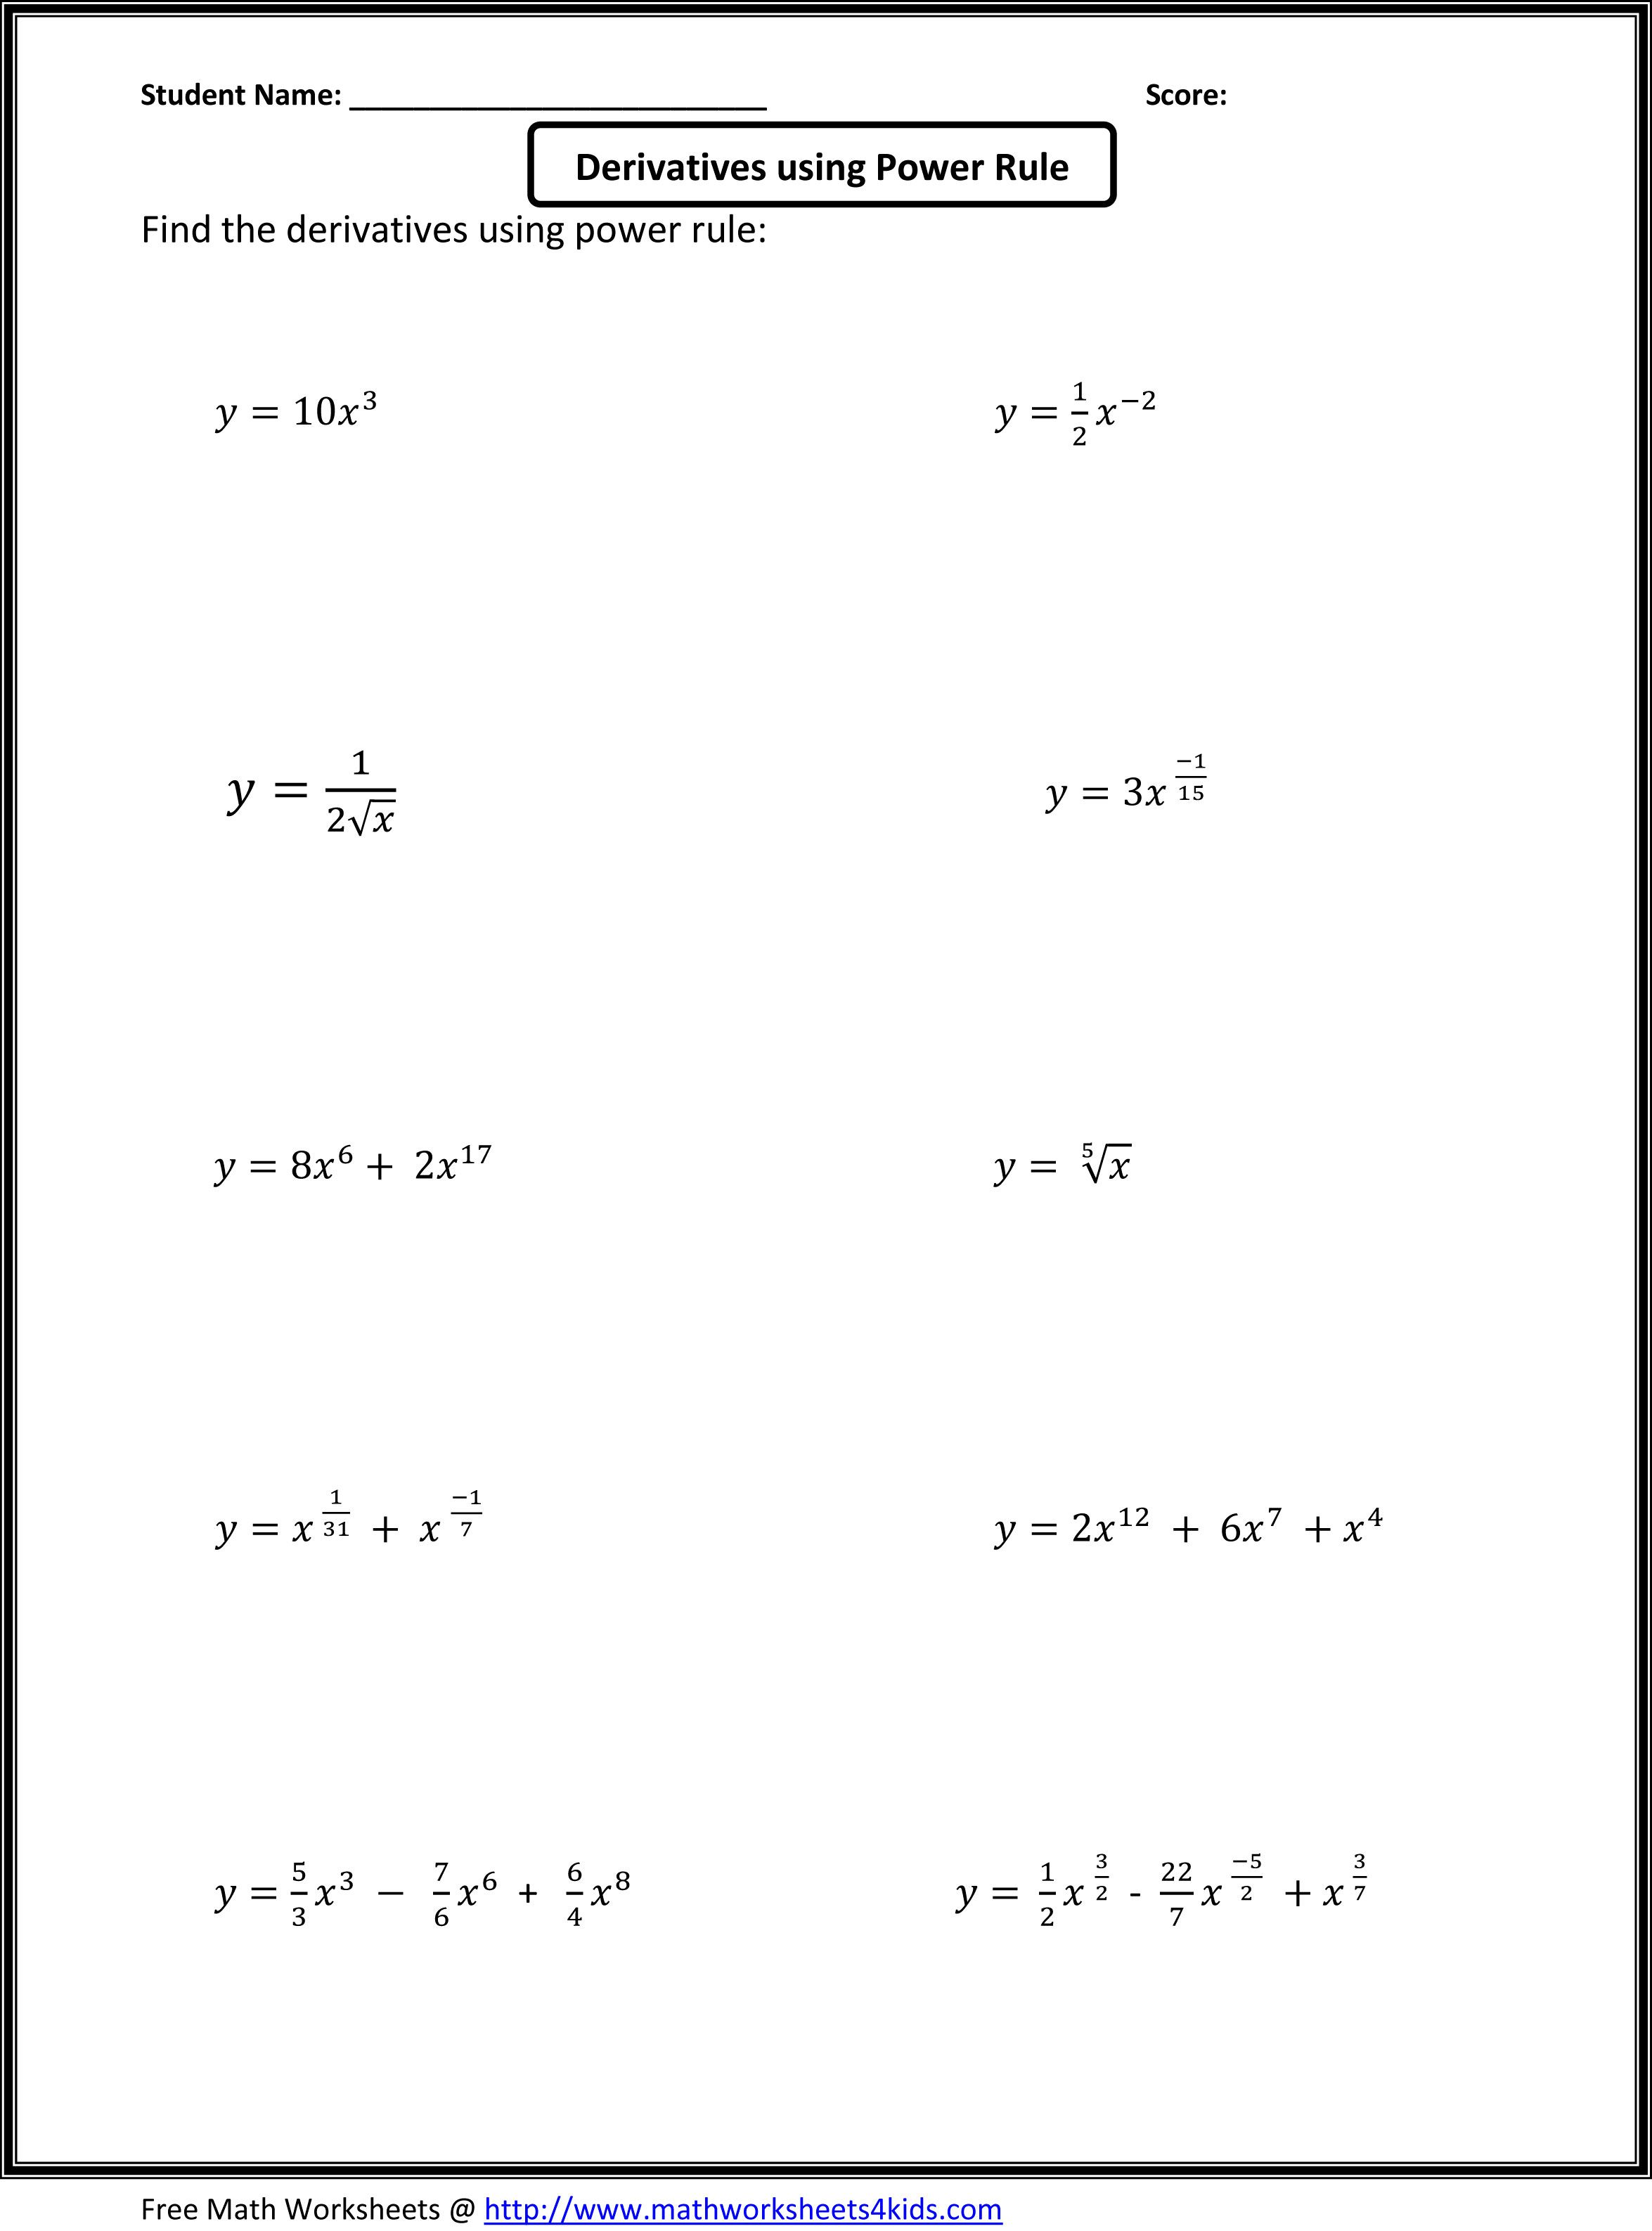 worksheet Evaluating Limits Worksheet basic calculus worksheets for higher grade students teaching students